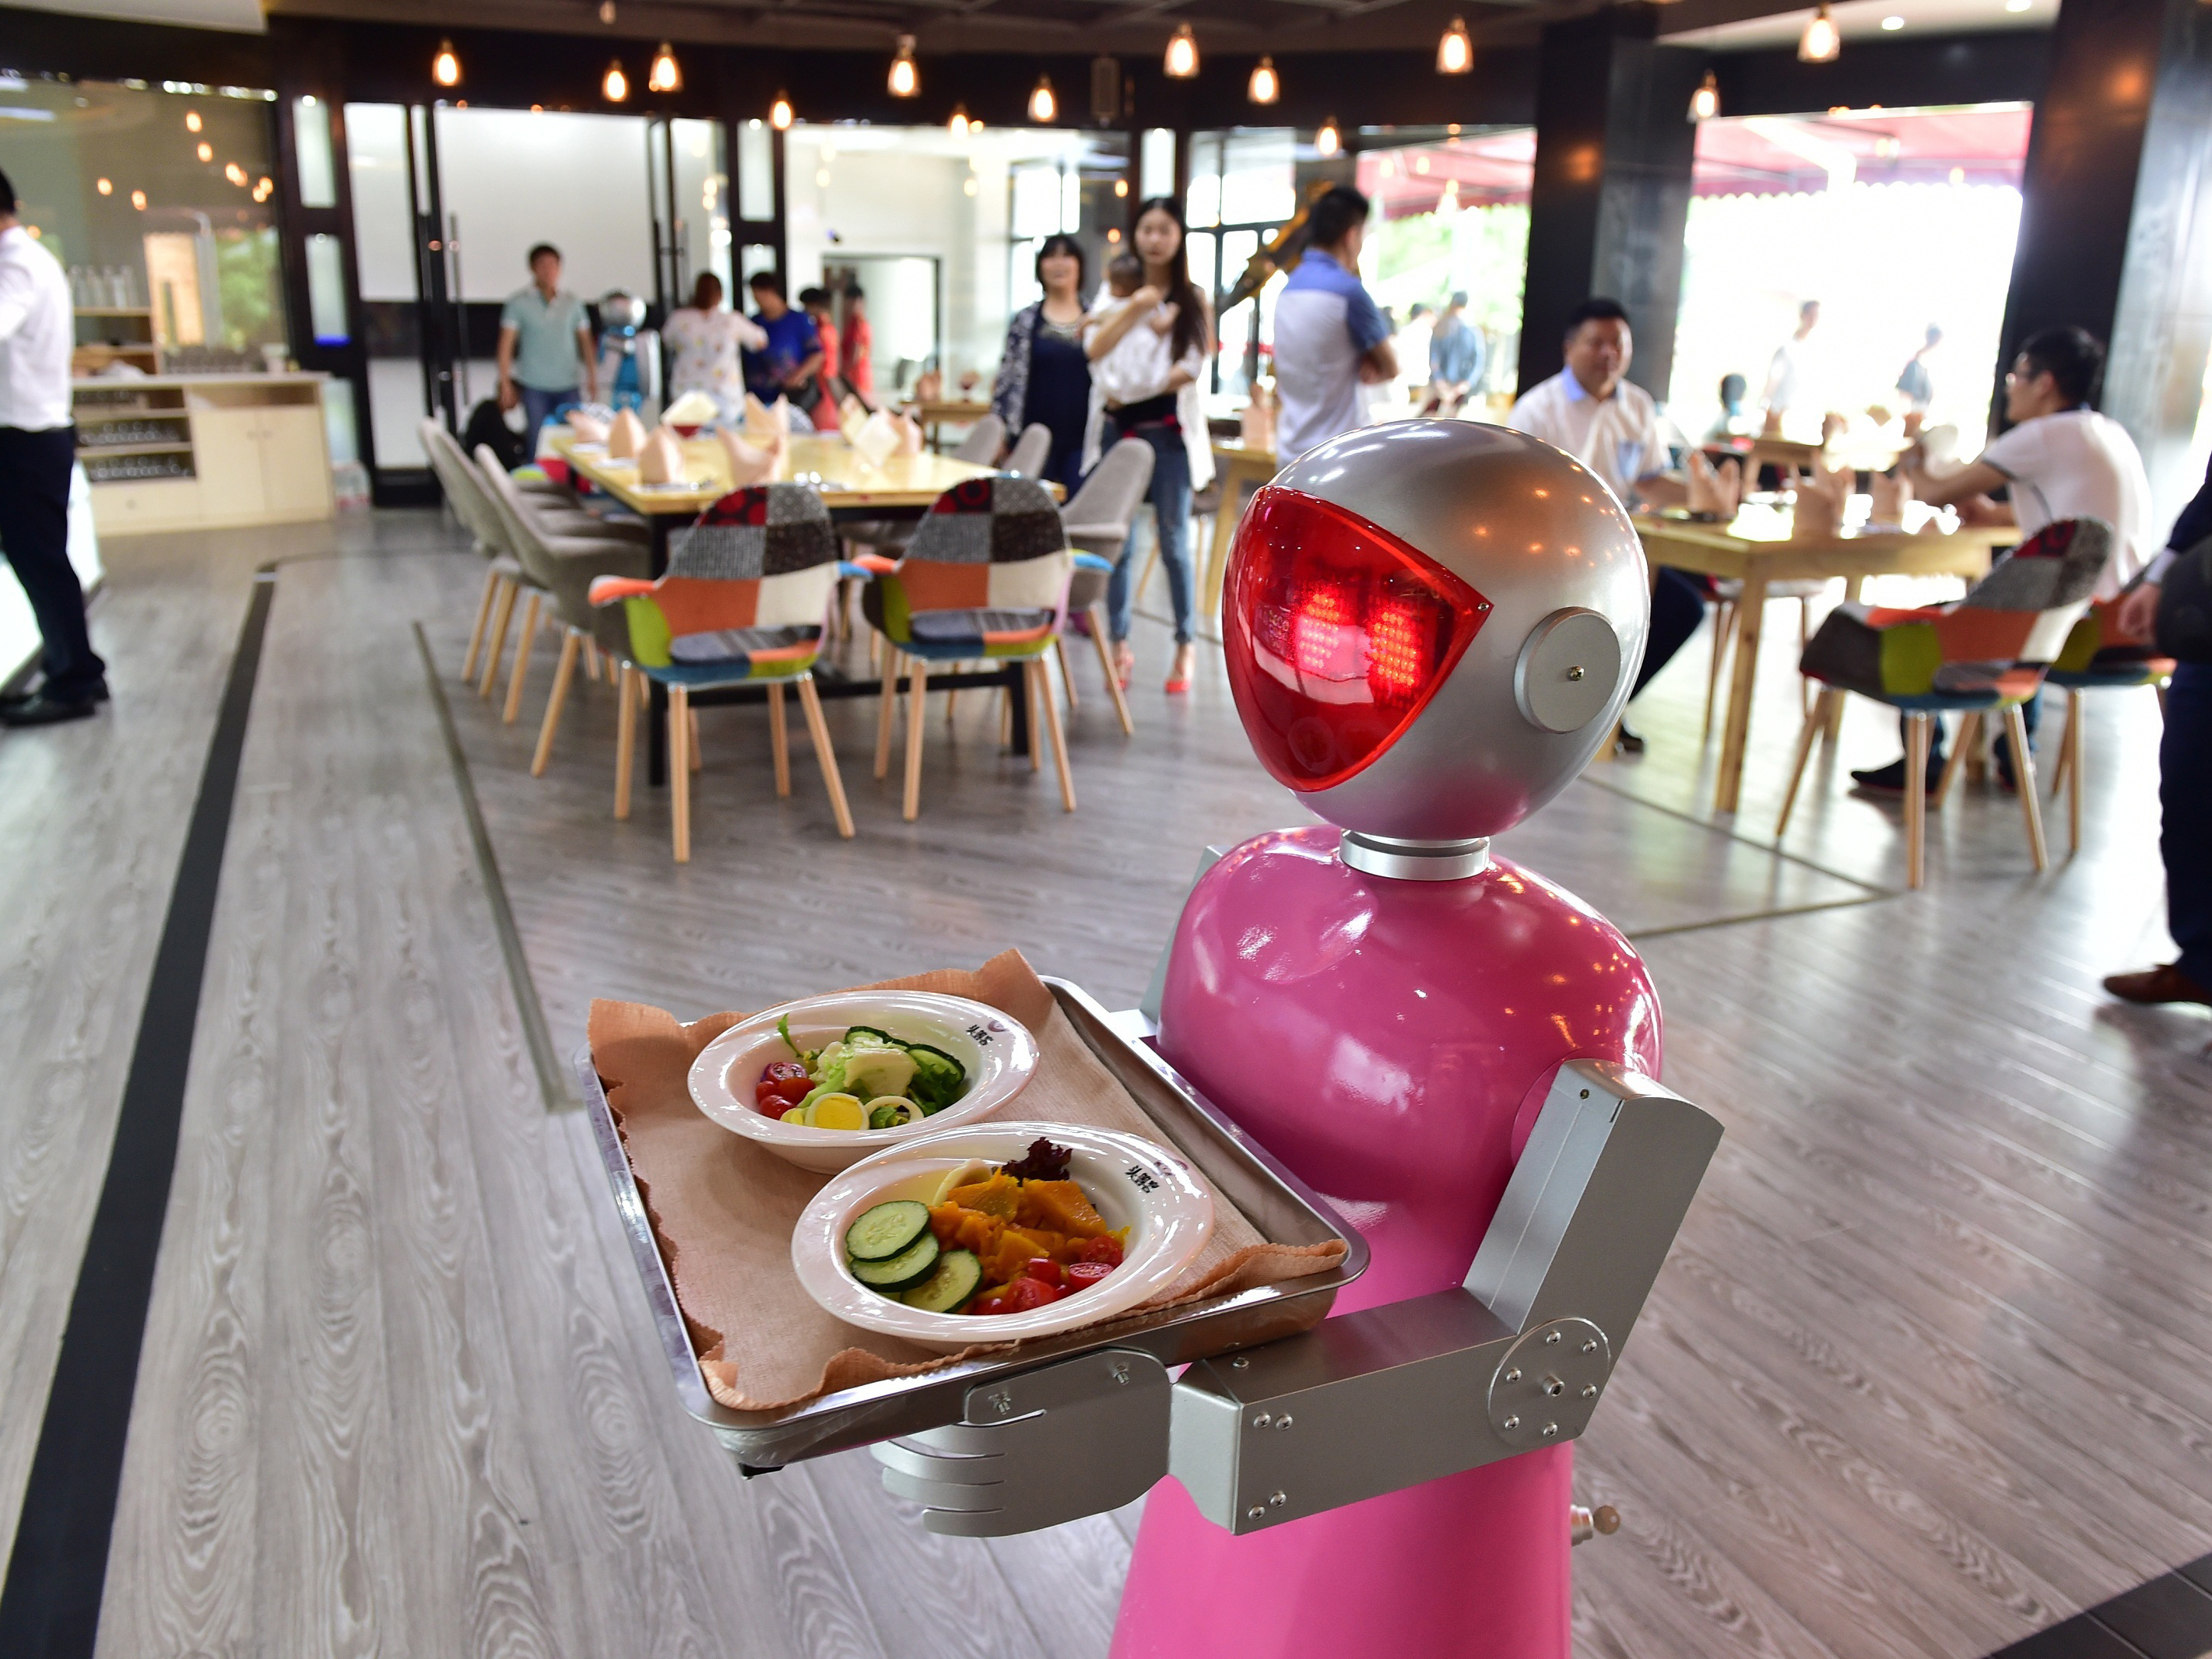 Couple Of Robot Waiters Show In Yiwu's Restaurant